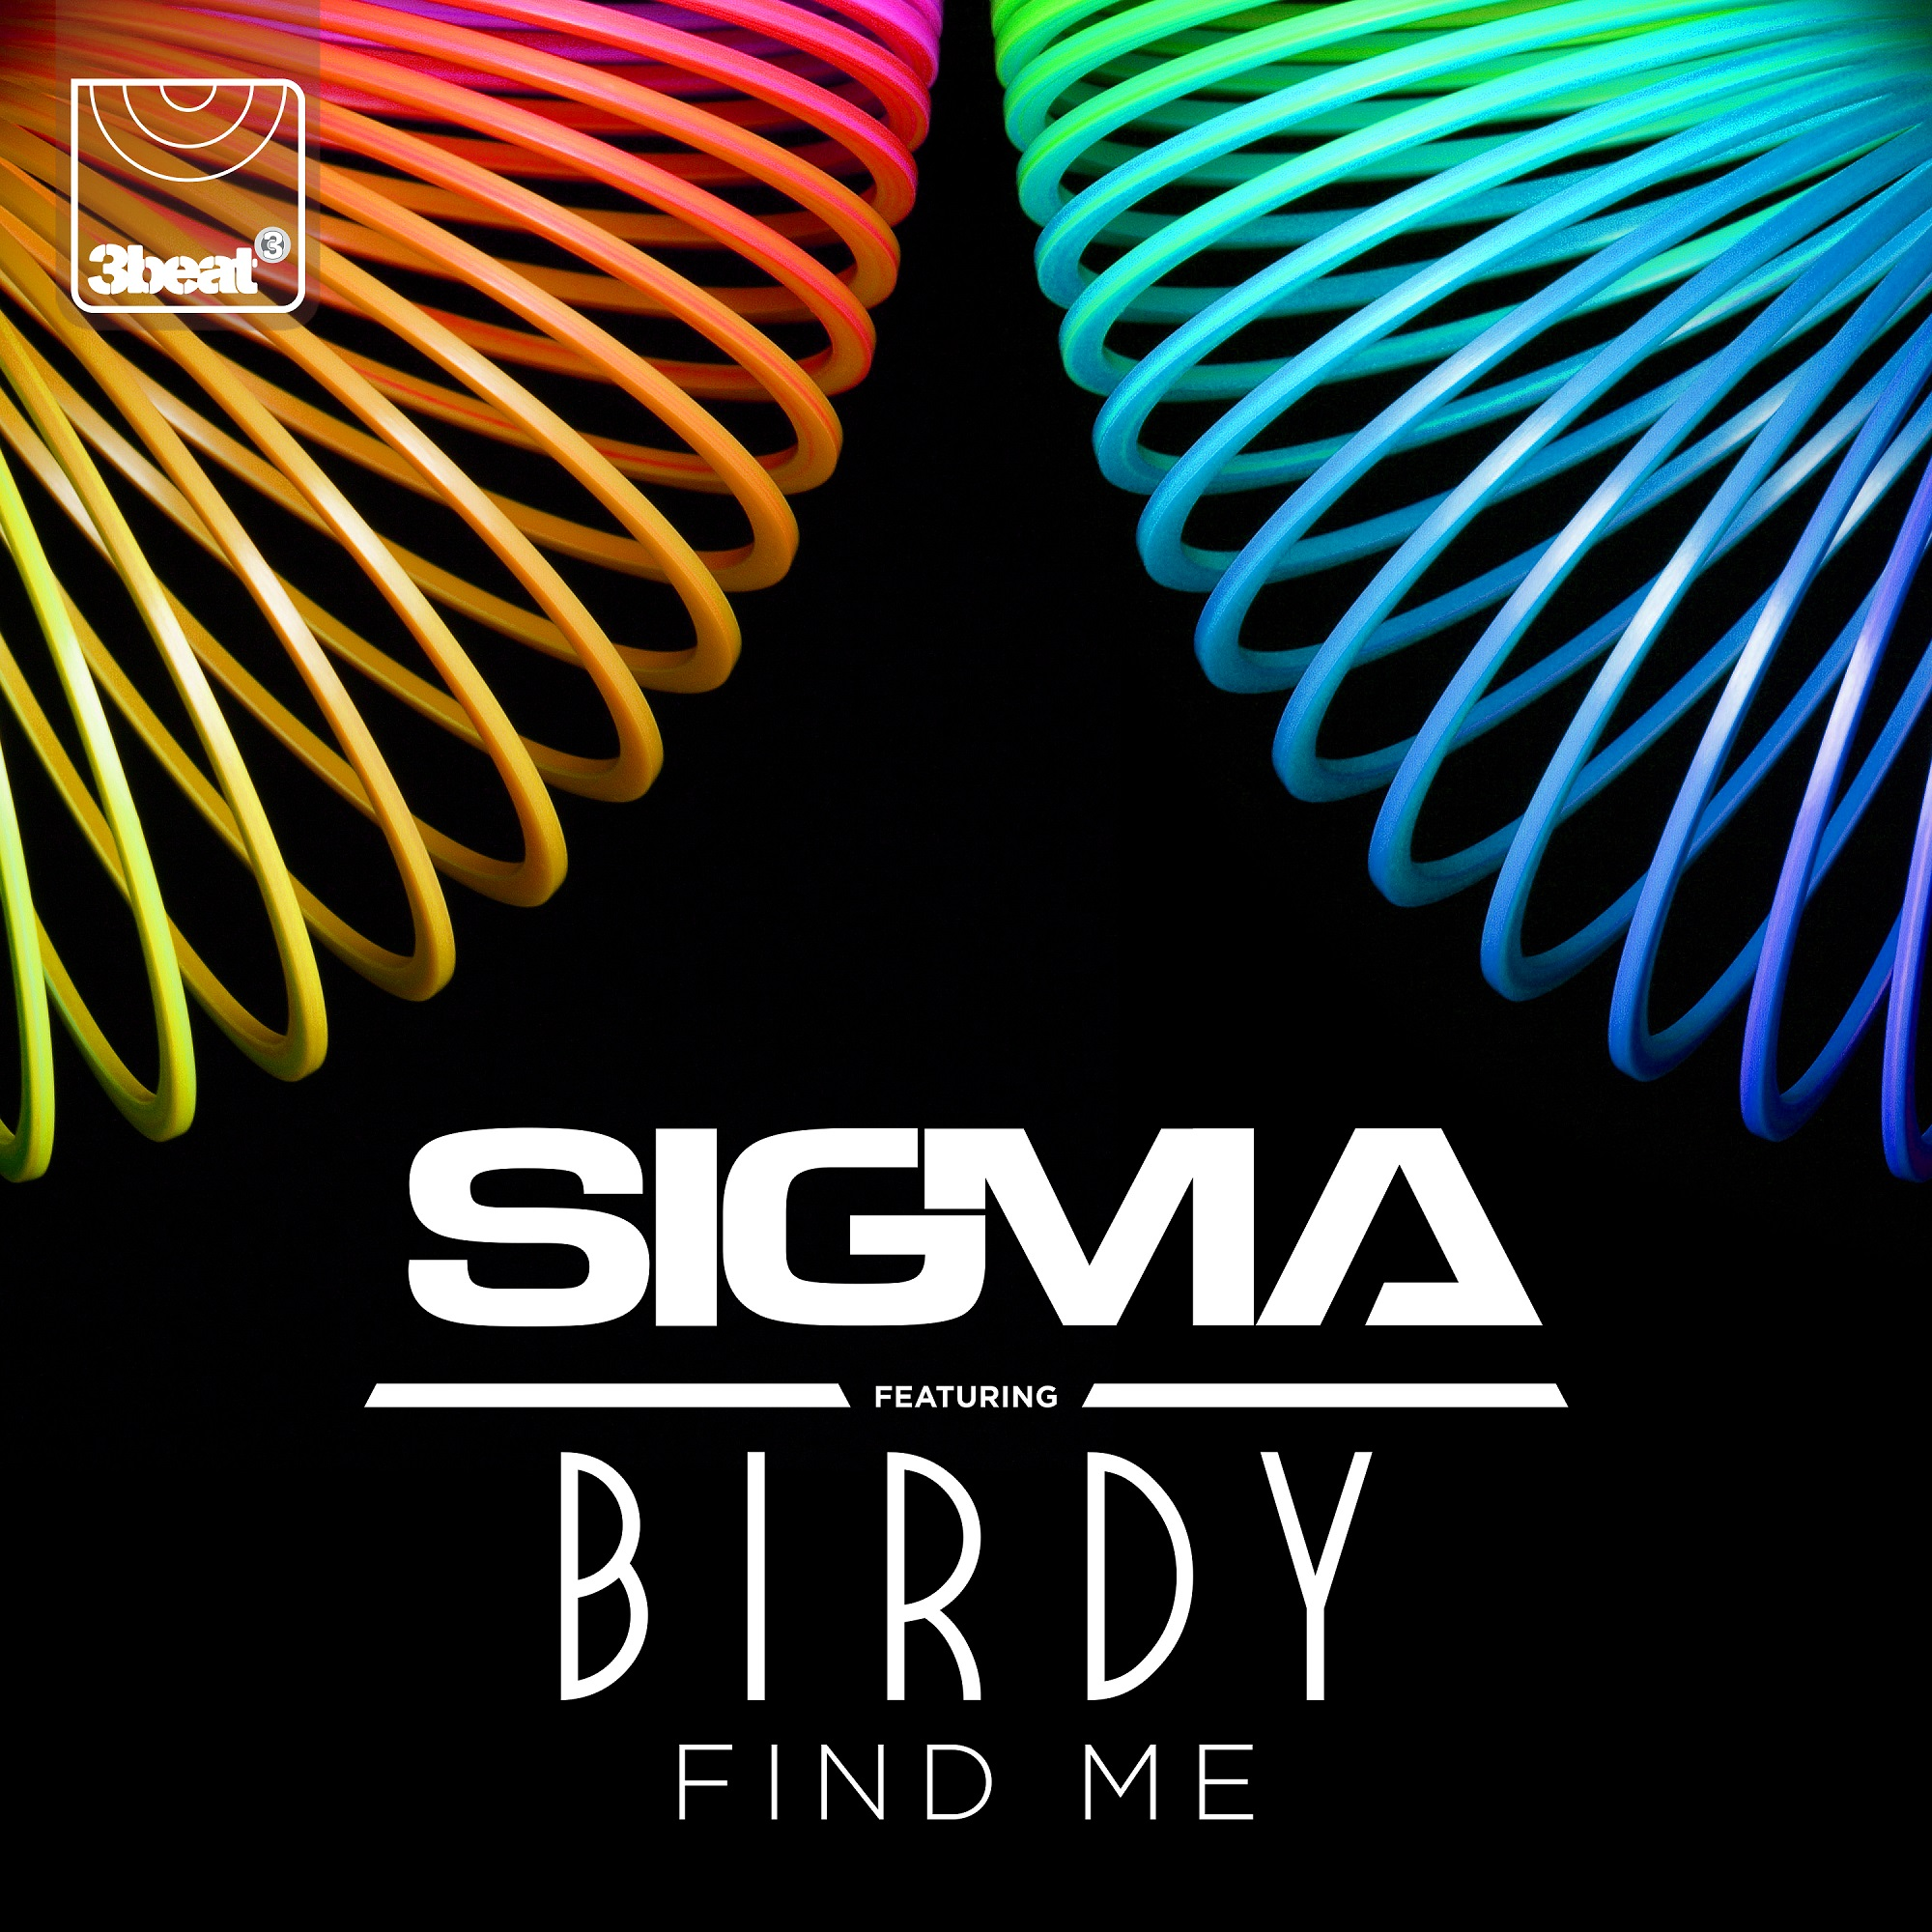 3beat250-sigma-ft-birdy-find-me-packshot-2000x2000